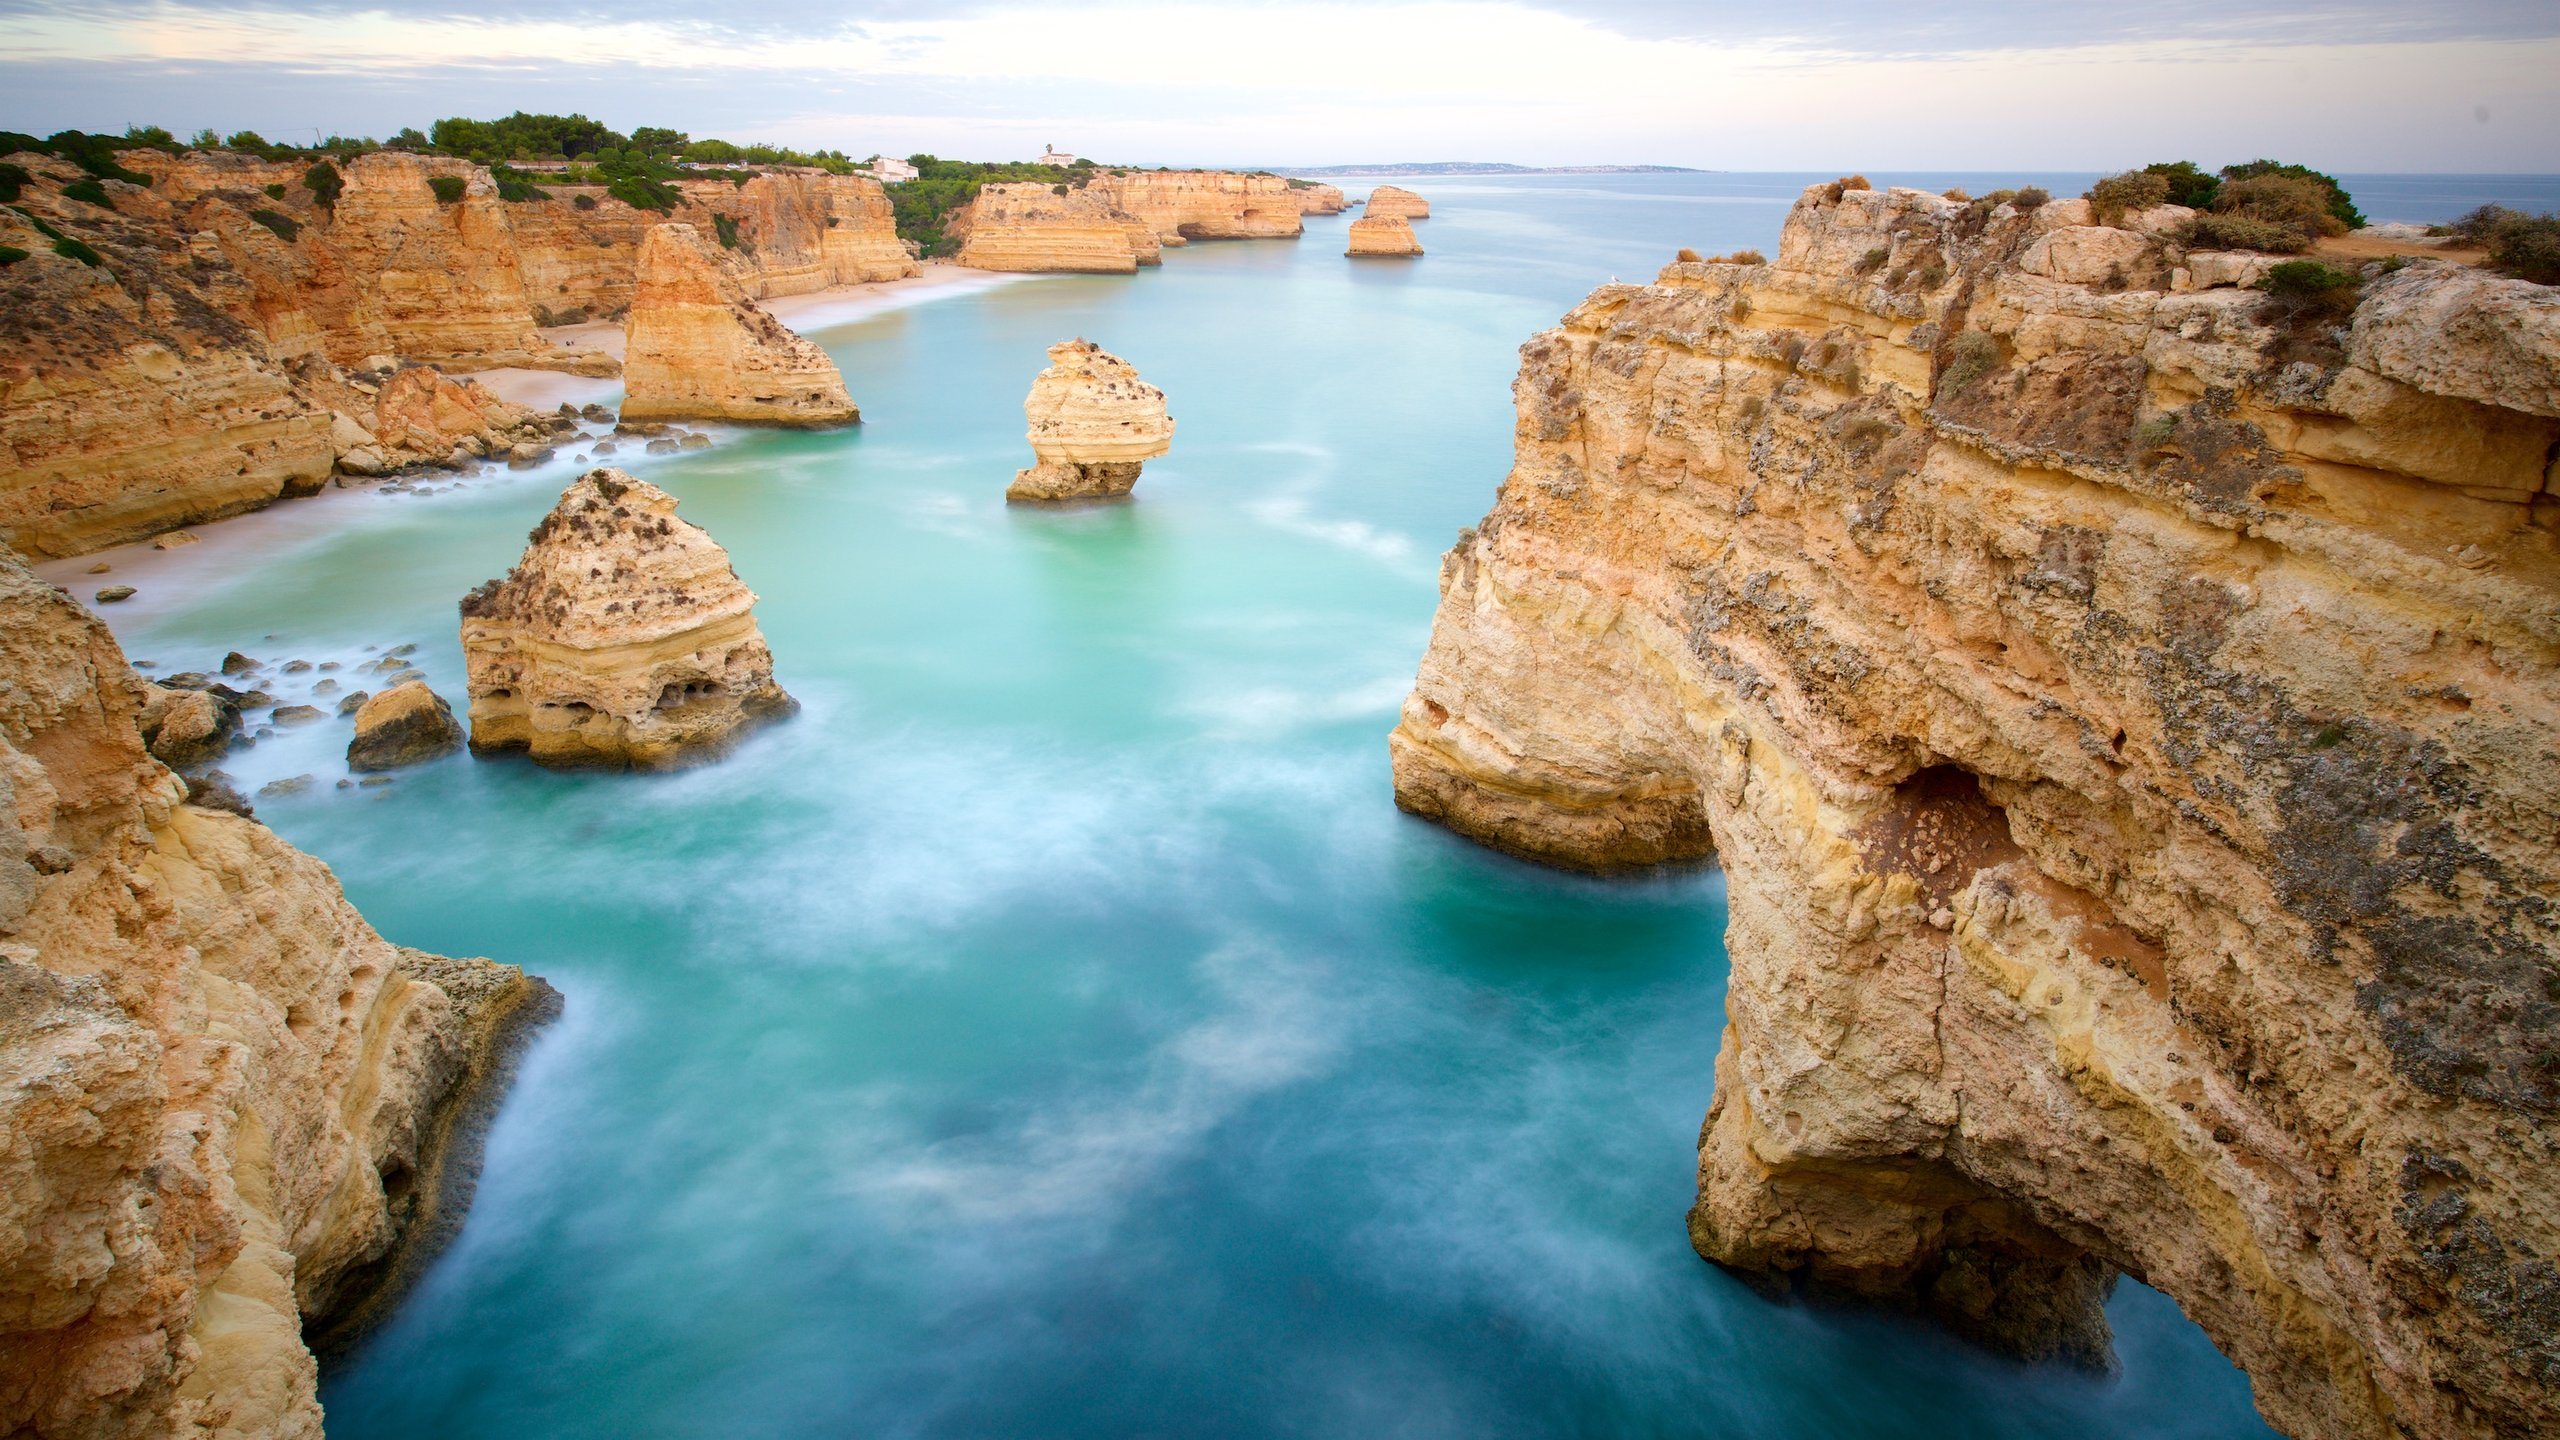 Hotel Tivoli Carvoeiro Algarve Booking Carvoeiro Hotels 2019 Book Top Hotels In Carvoeiro Expedia